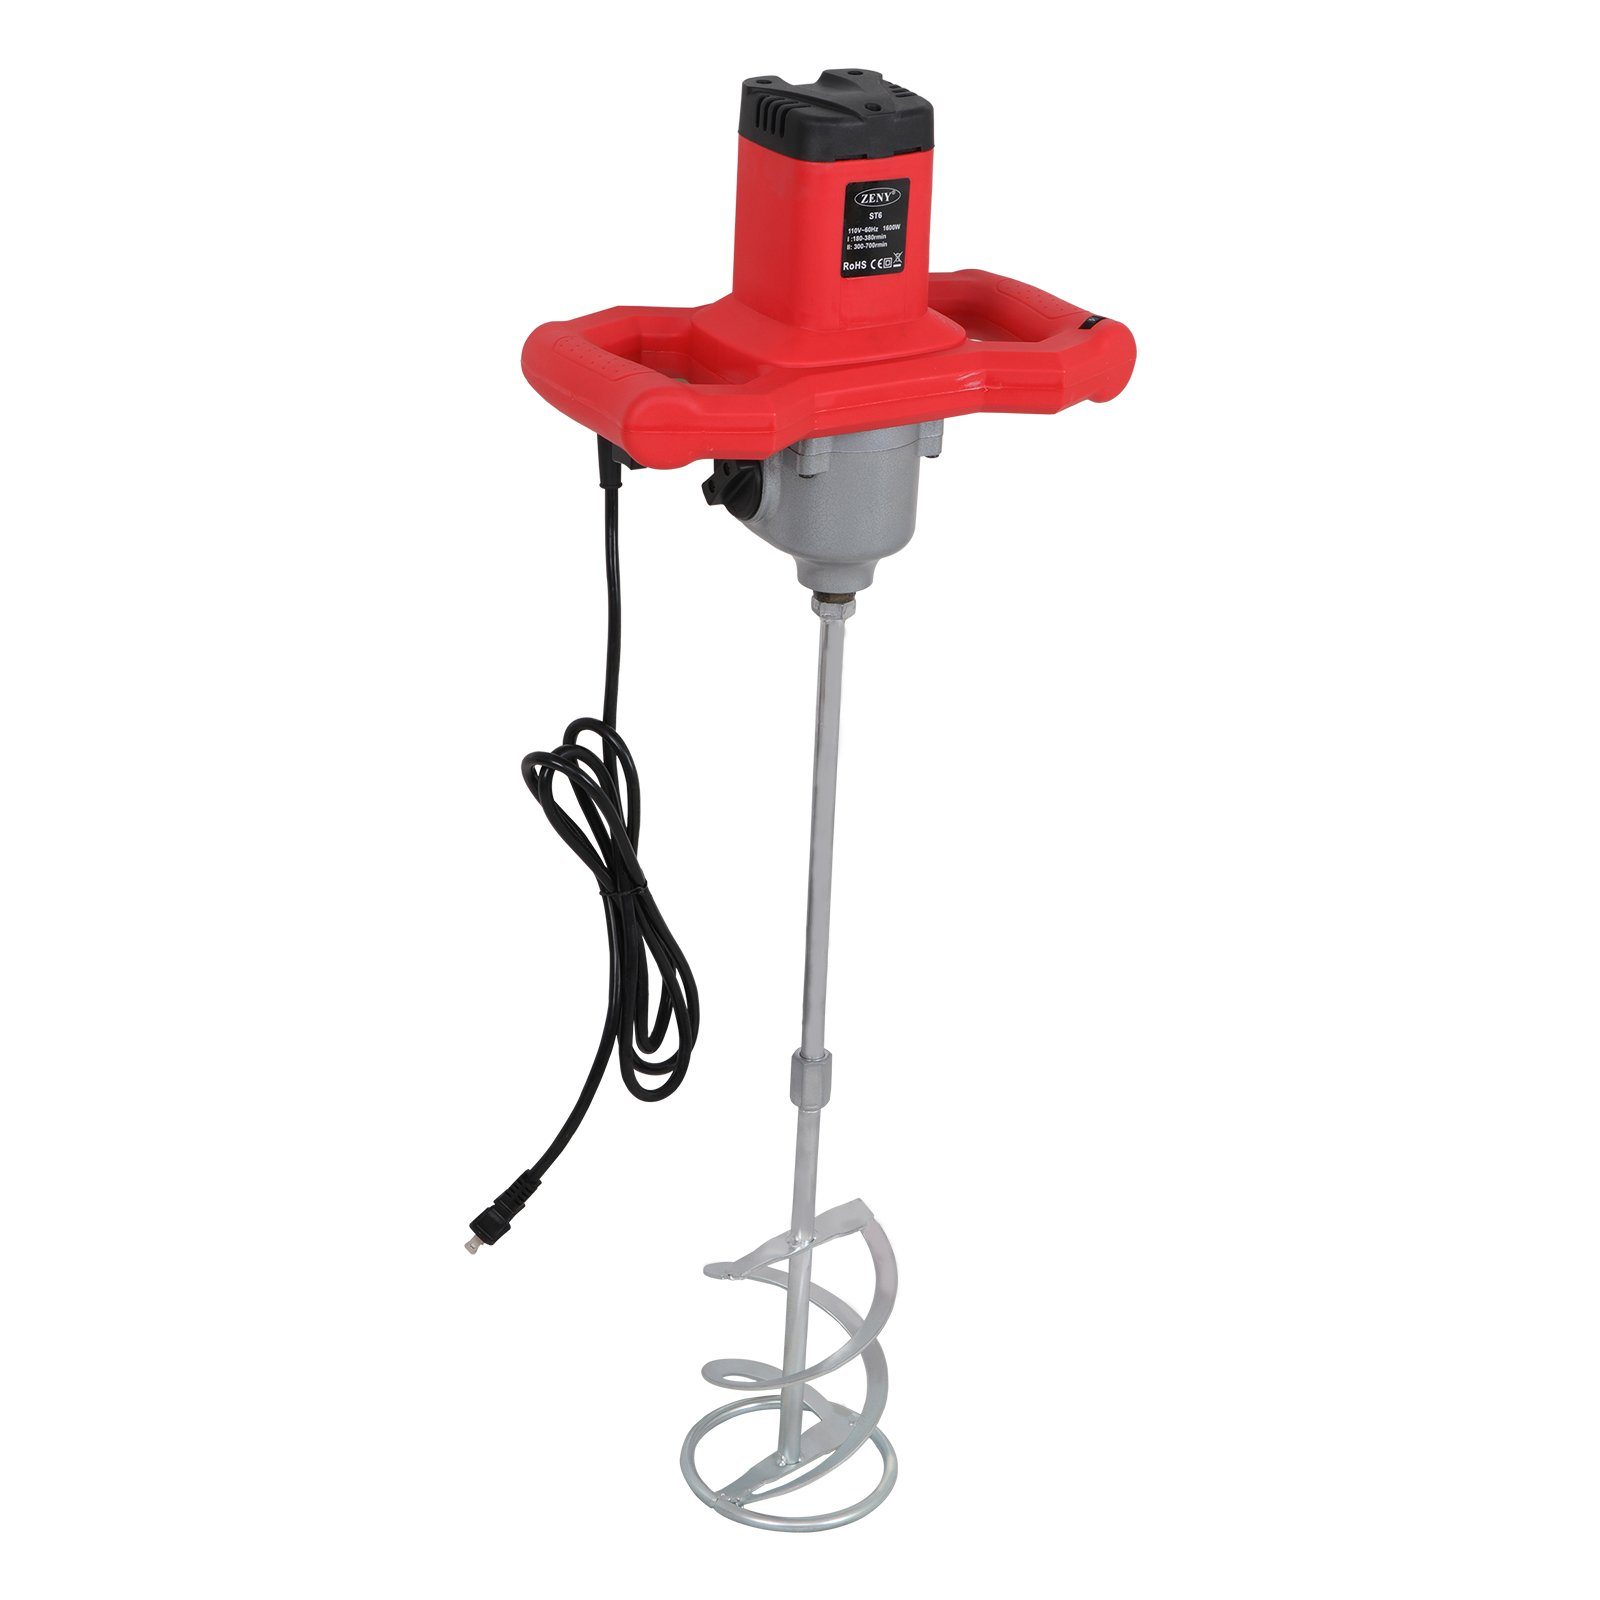 F2C Pro 1600W Adjustable 7 Speed Handheld Electric Concrete Cement Mixer Thinset Mortar Grout Plaster Cement Mixer Stirring Tool AC 110V